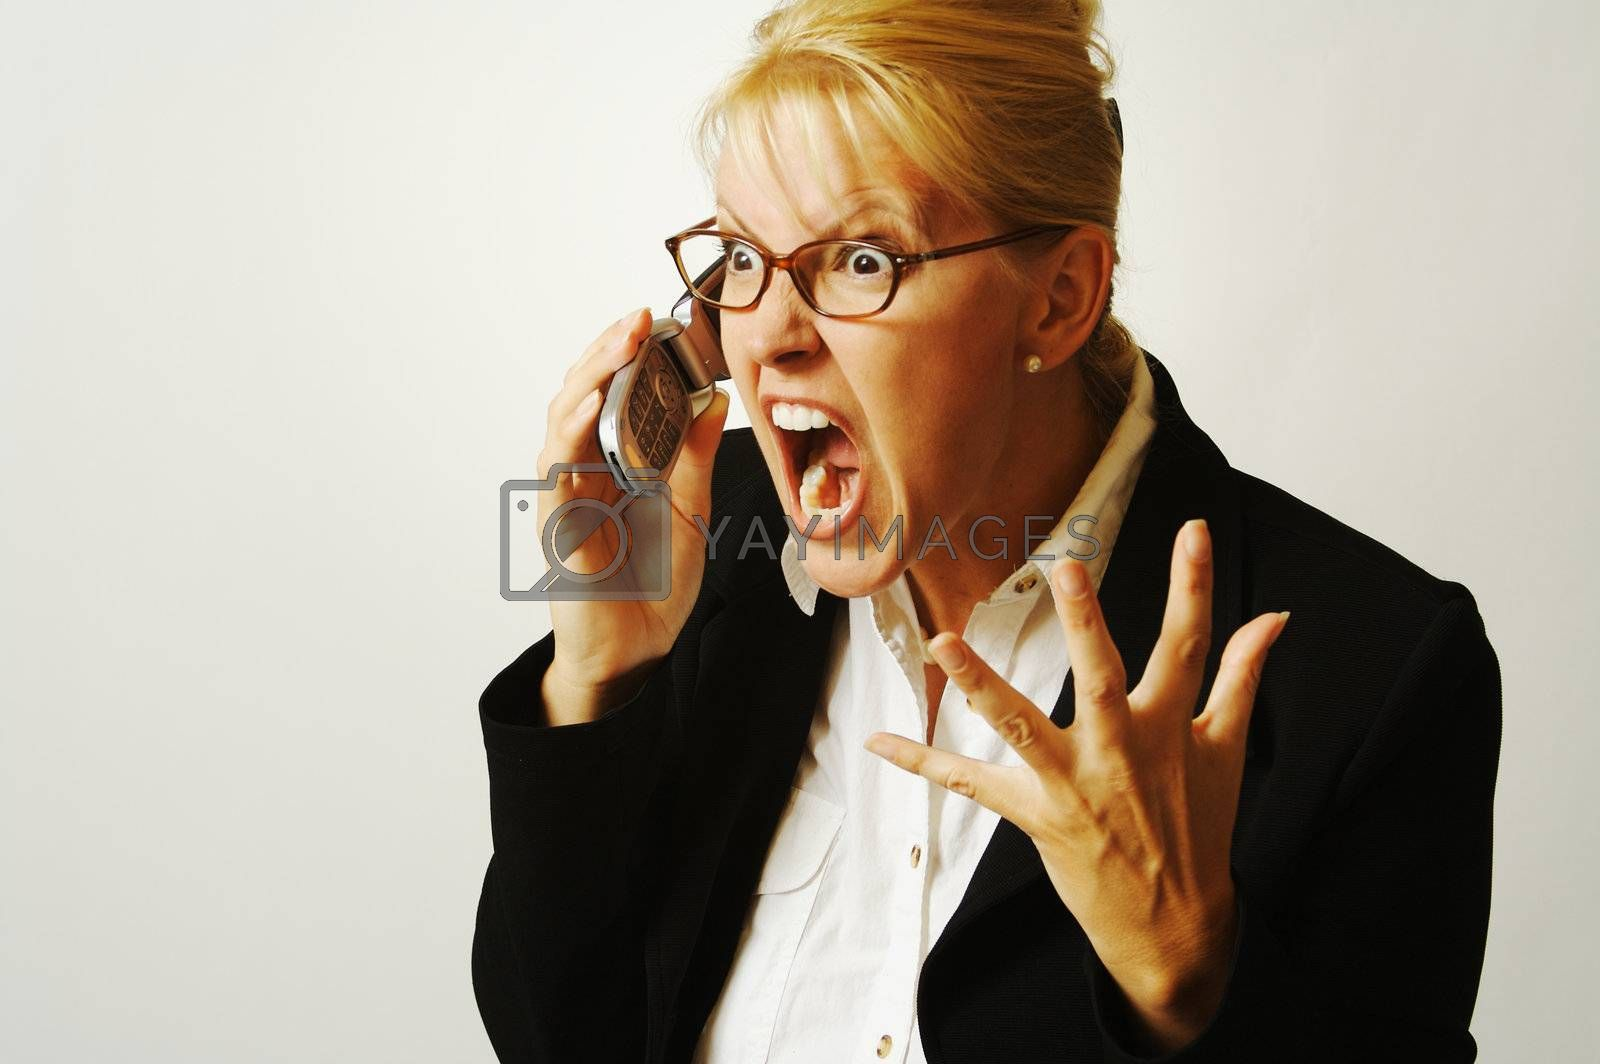 Angry Business Woman on Cell Phone by Feverpitched